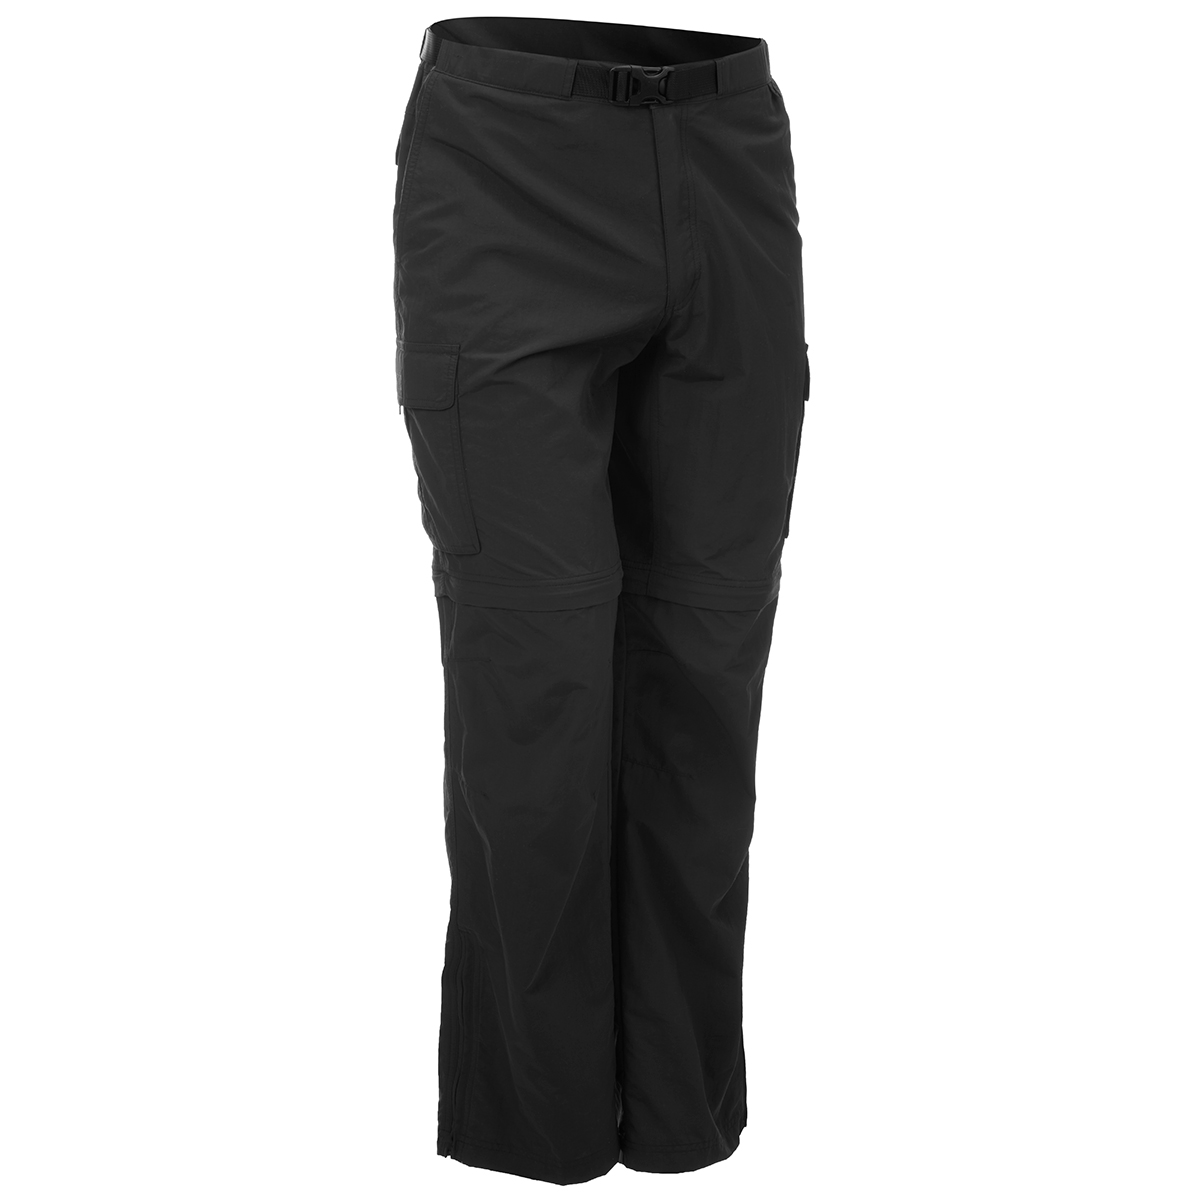 Ems Men's Camp Cargo Zip-Off Pants - Black, 30/30